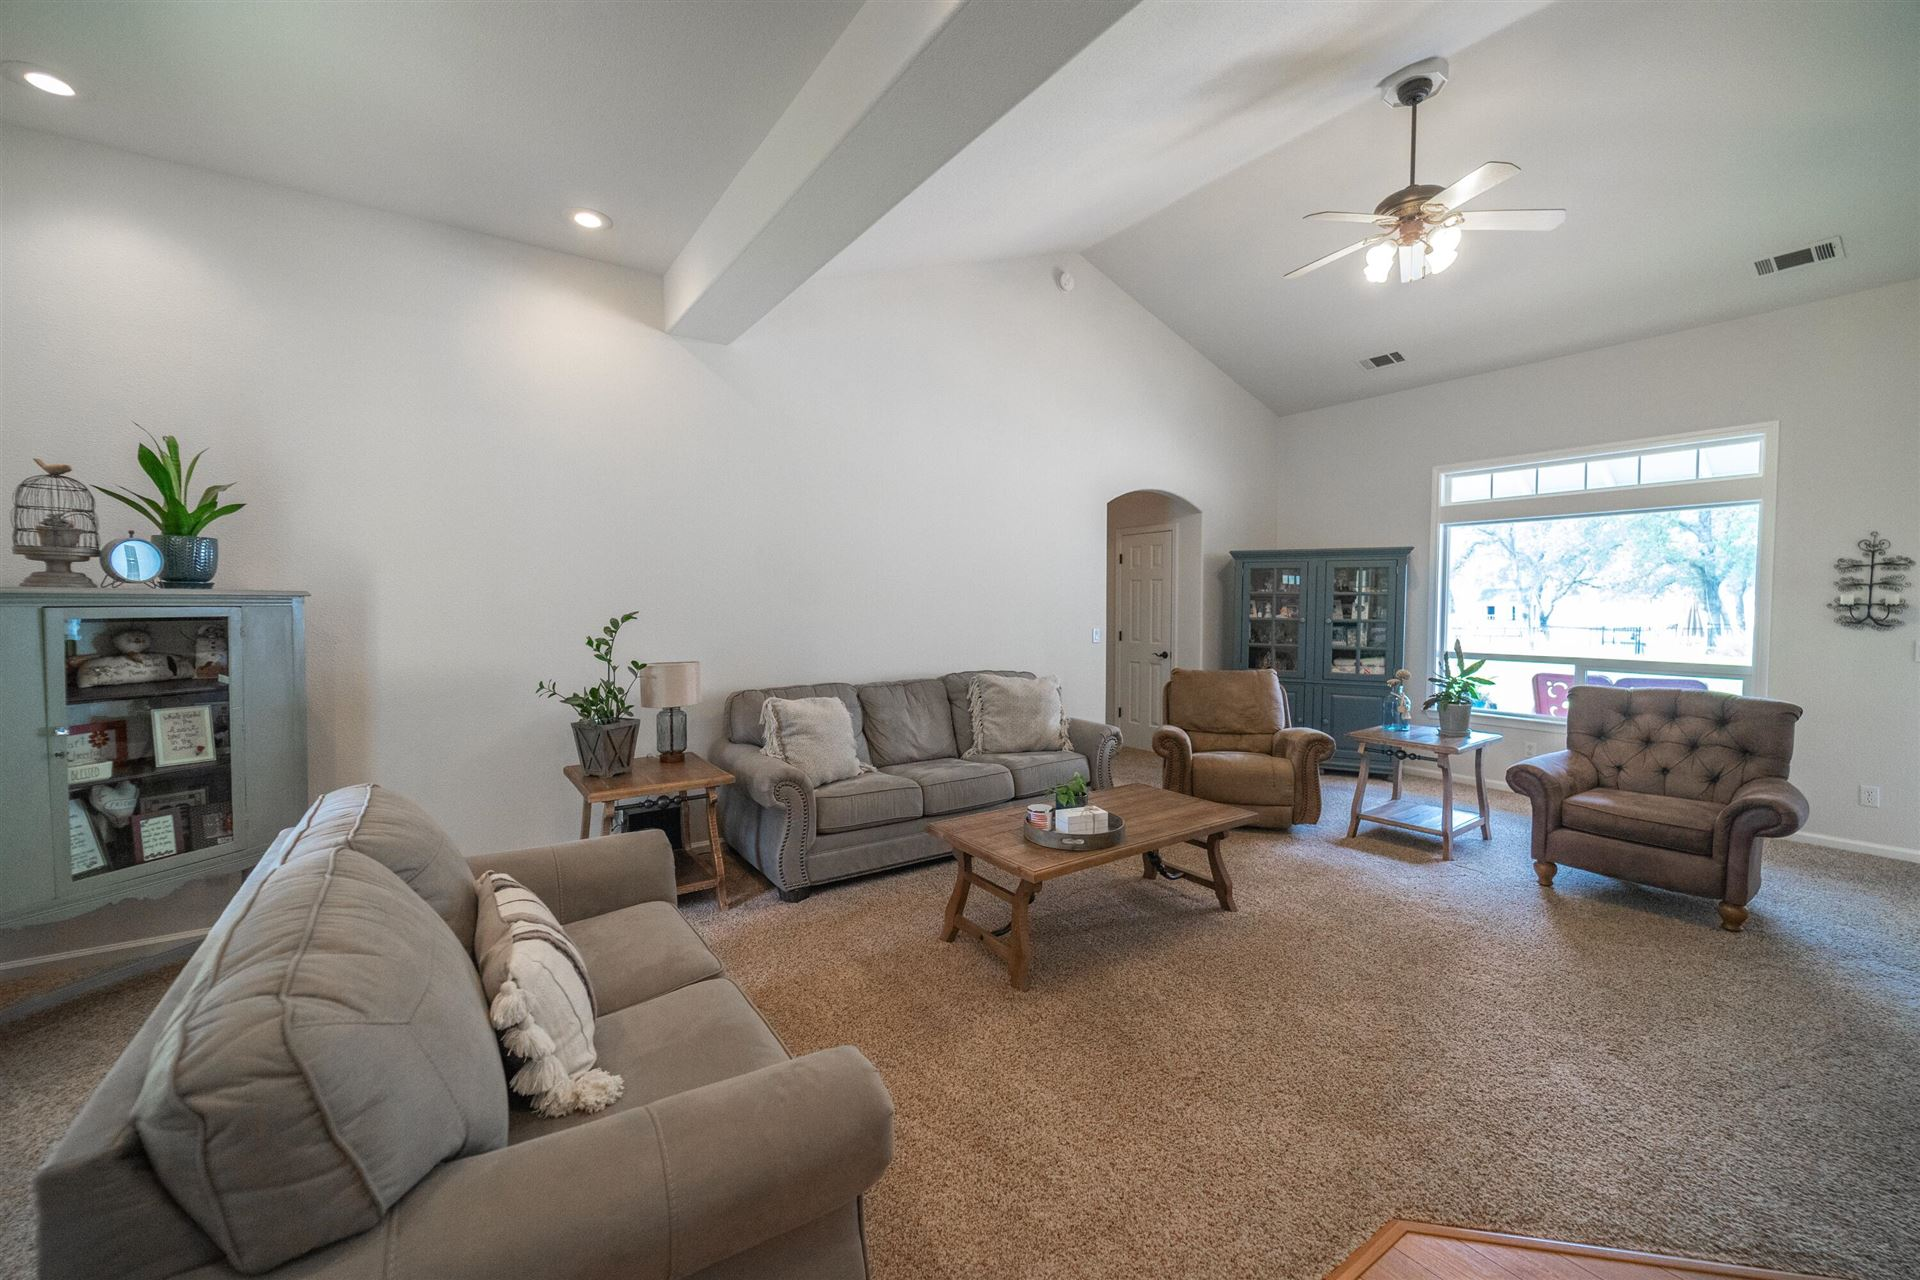 Photo of 19262 Stonegate Dr, Cottonwood, CA 96022 (MLS # 21-4047)